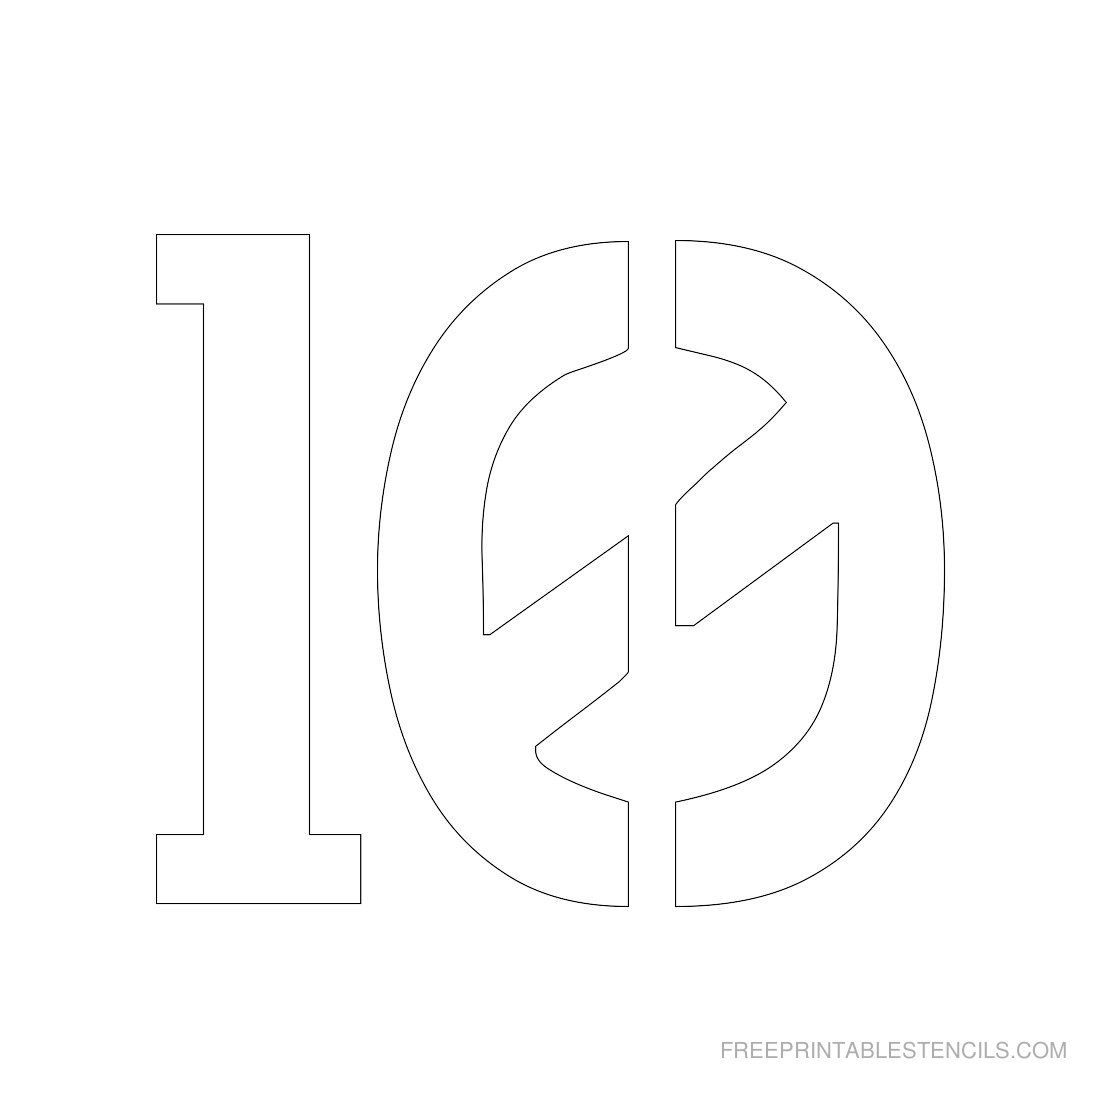 picture relating to 3 Inch Number Stencils Printable Free identify Printable 3 Inch Variety Stencils 1 10 Cost-free Com brody boy